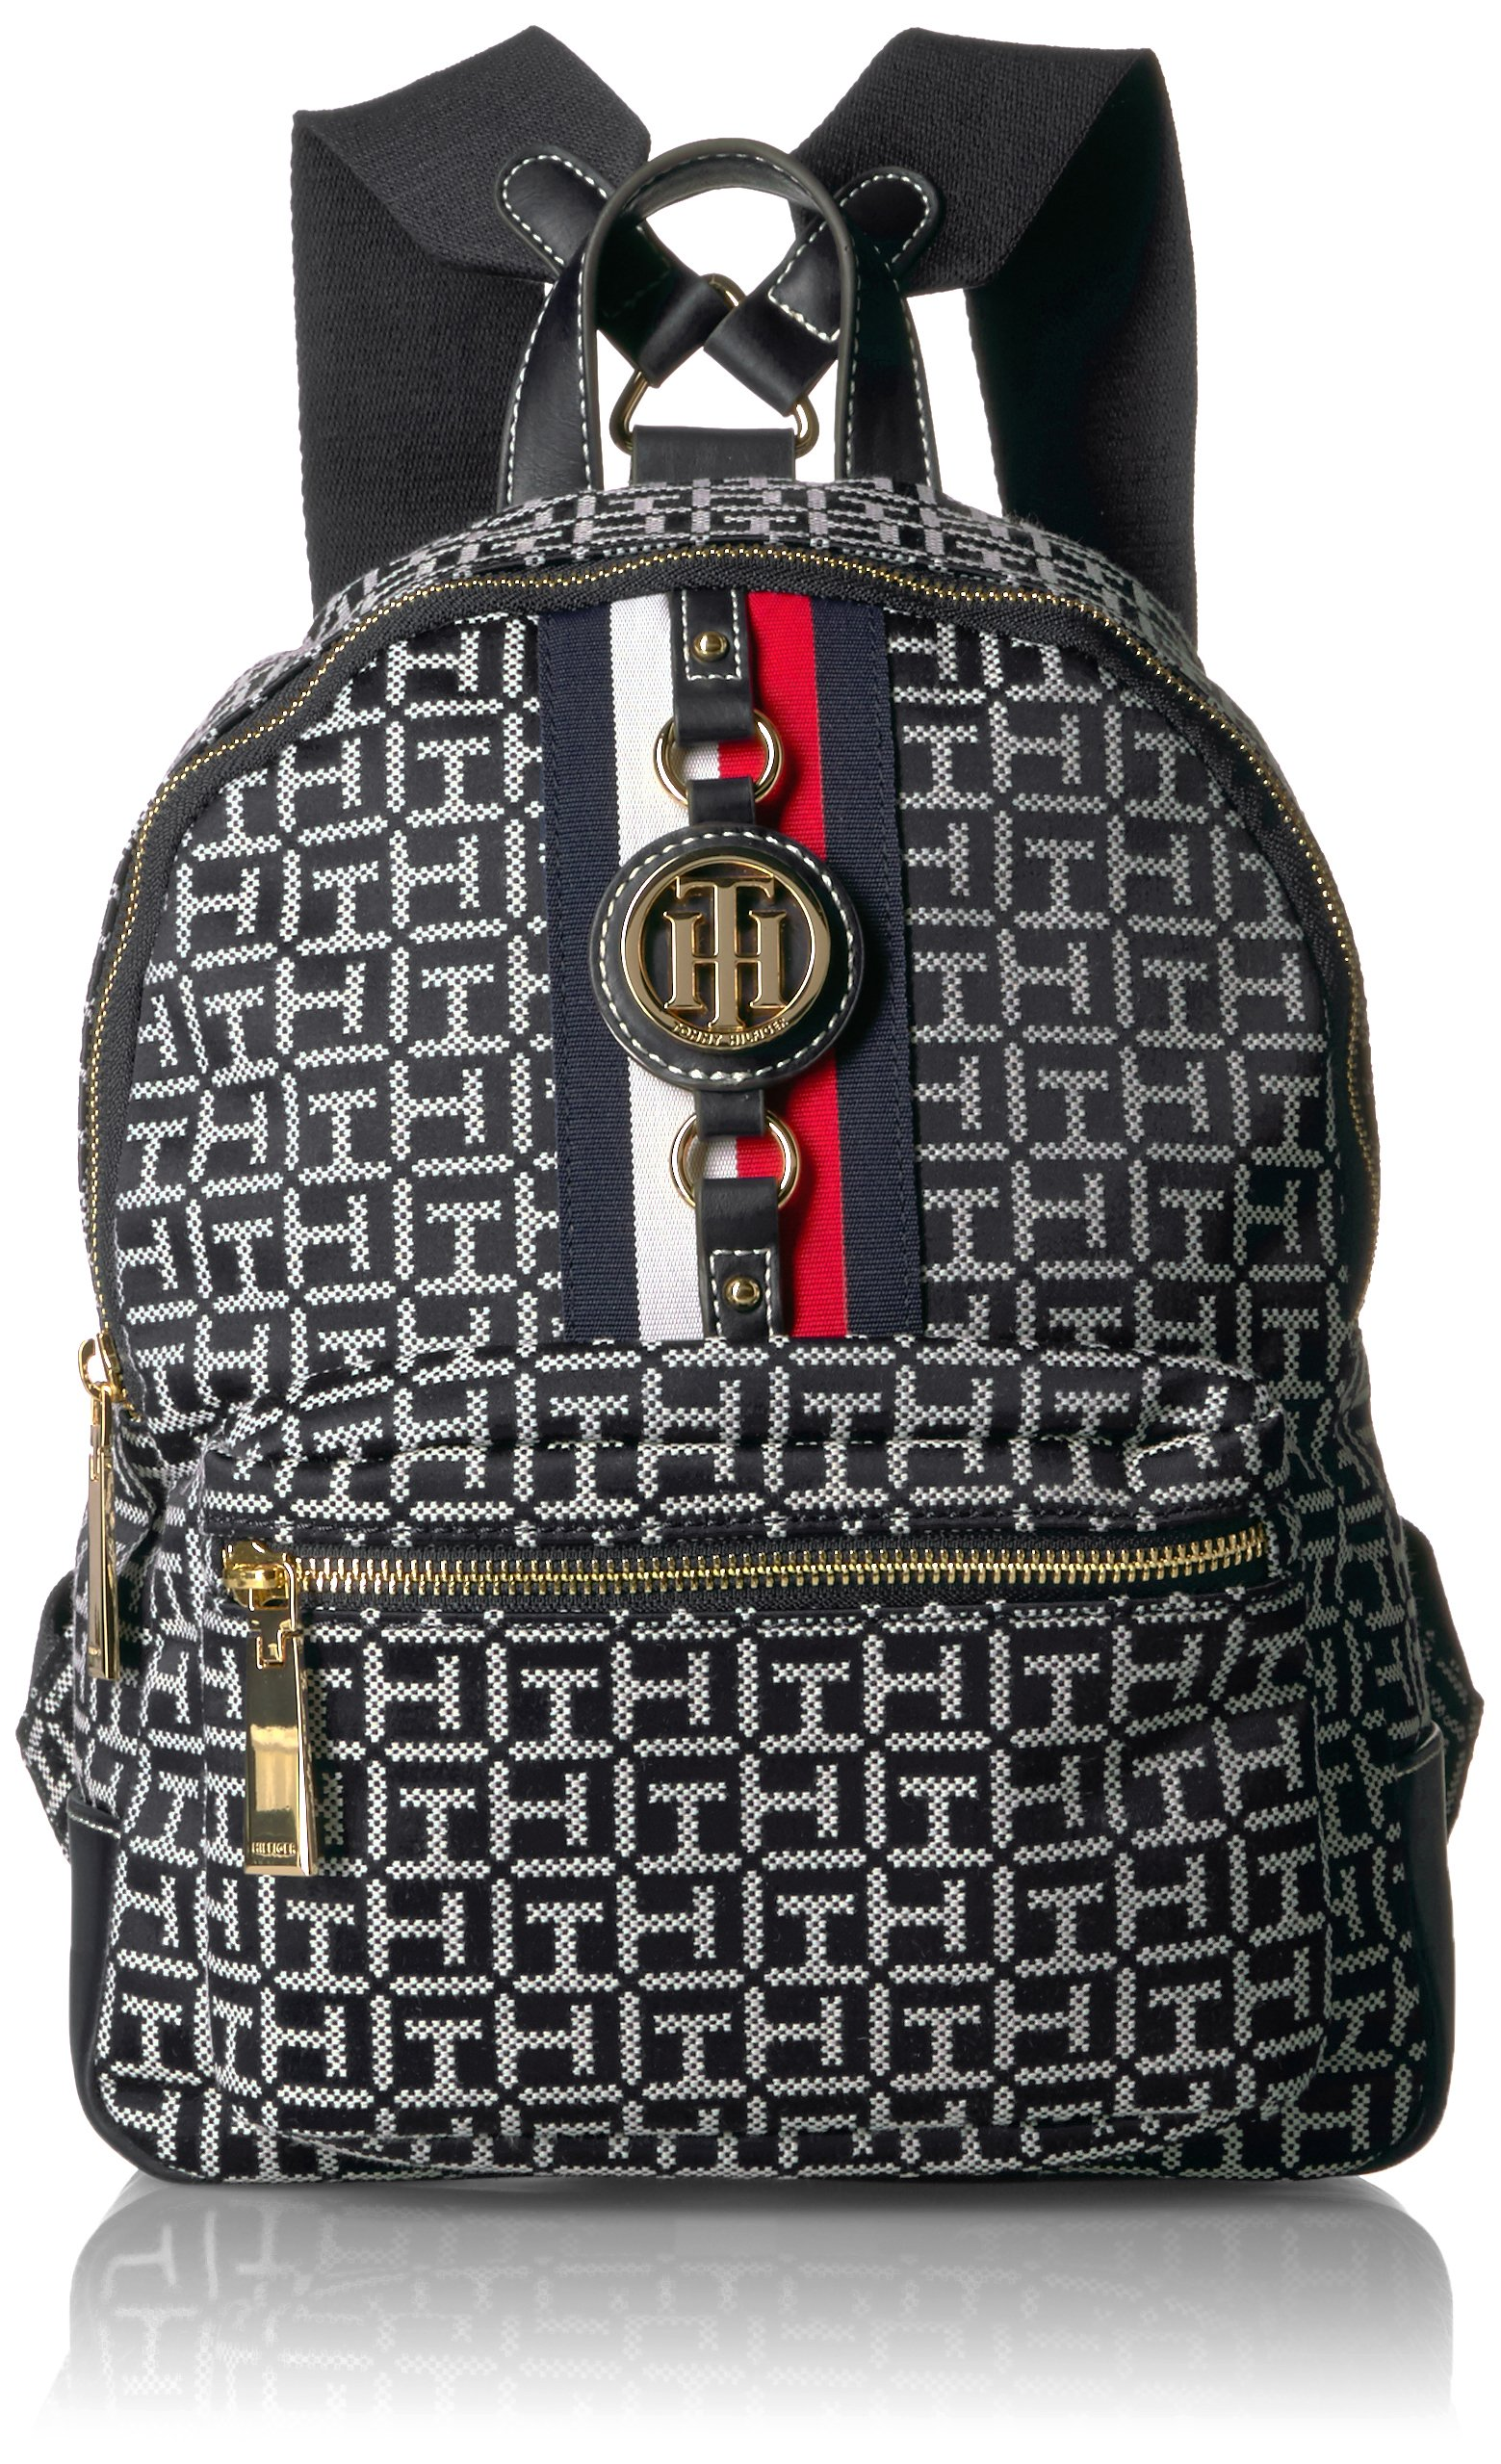 Tommy Hilfiger Women's Backpack Jaden, Black/White by Tommy Hilfiger (Image #1)